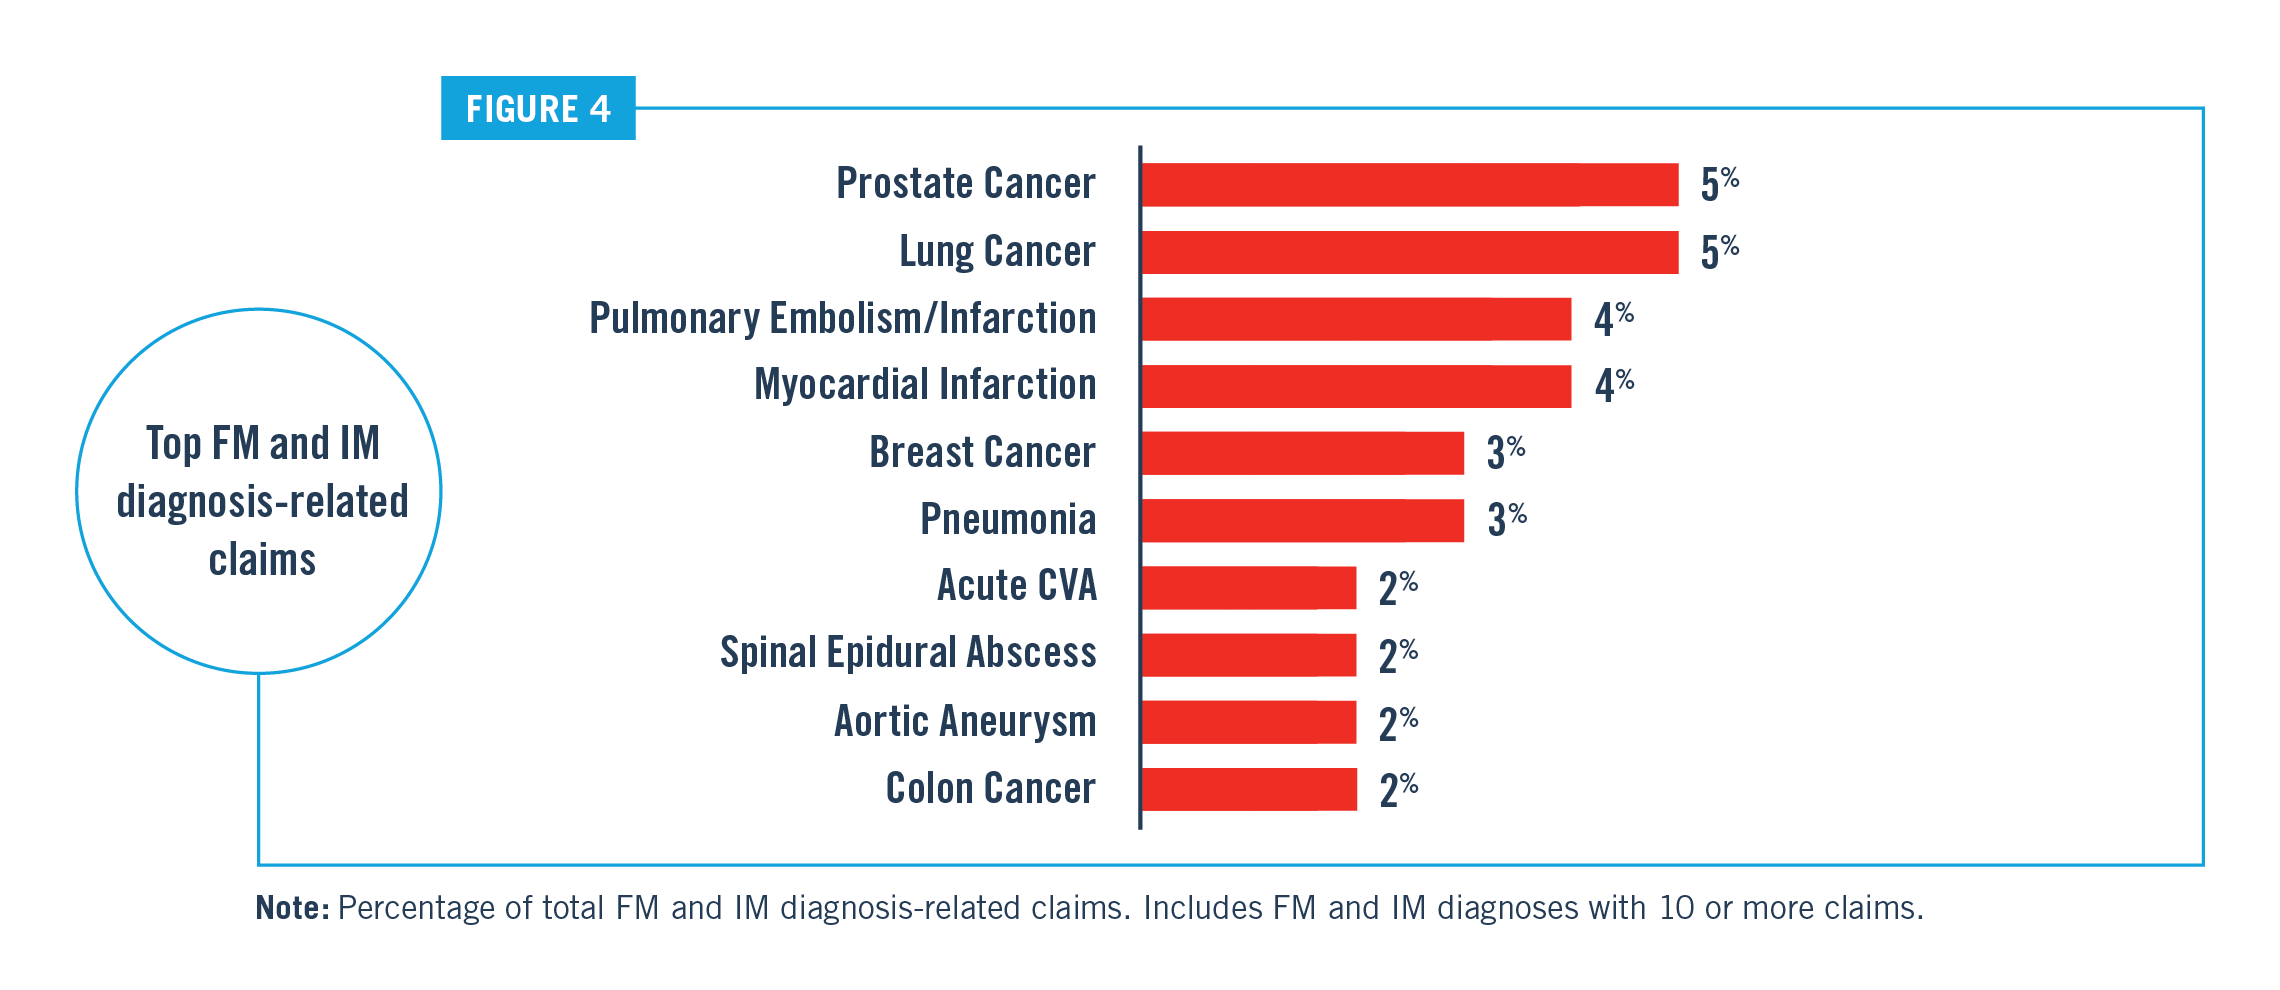 Top FM and IM Diagnosis Related Claims